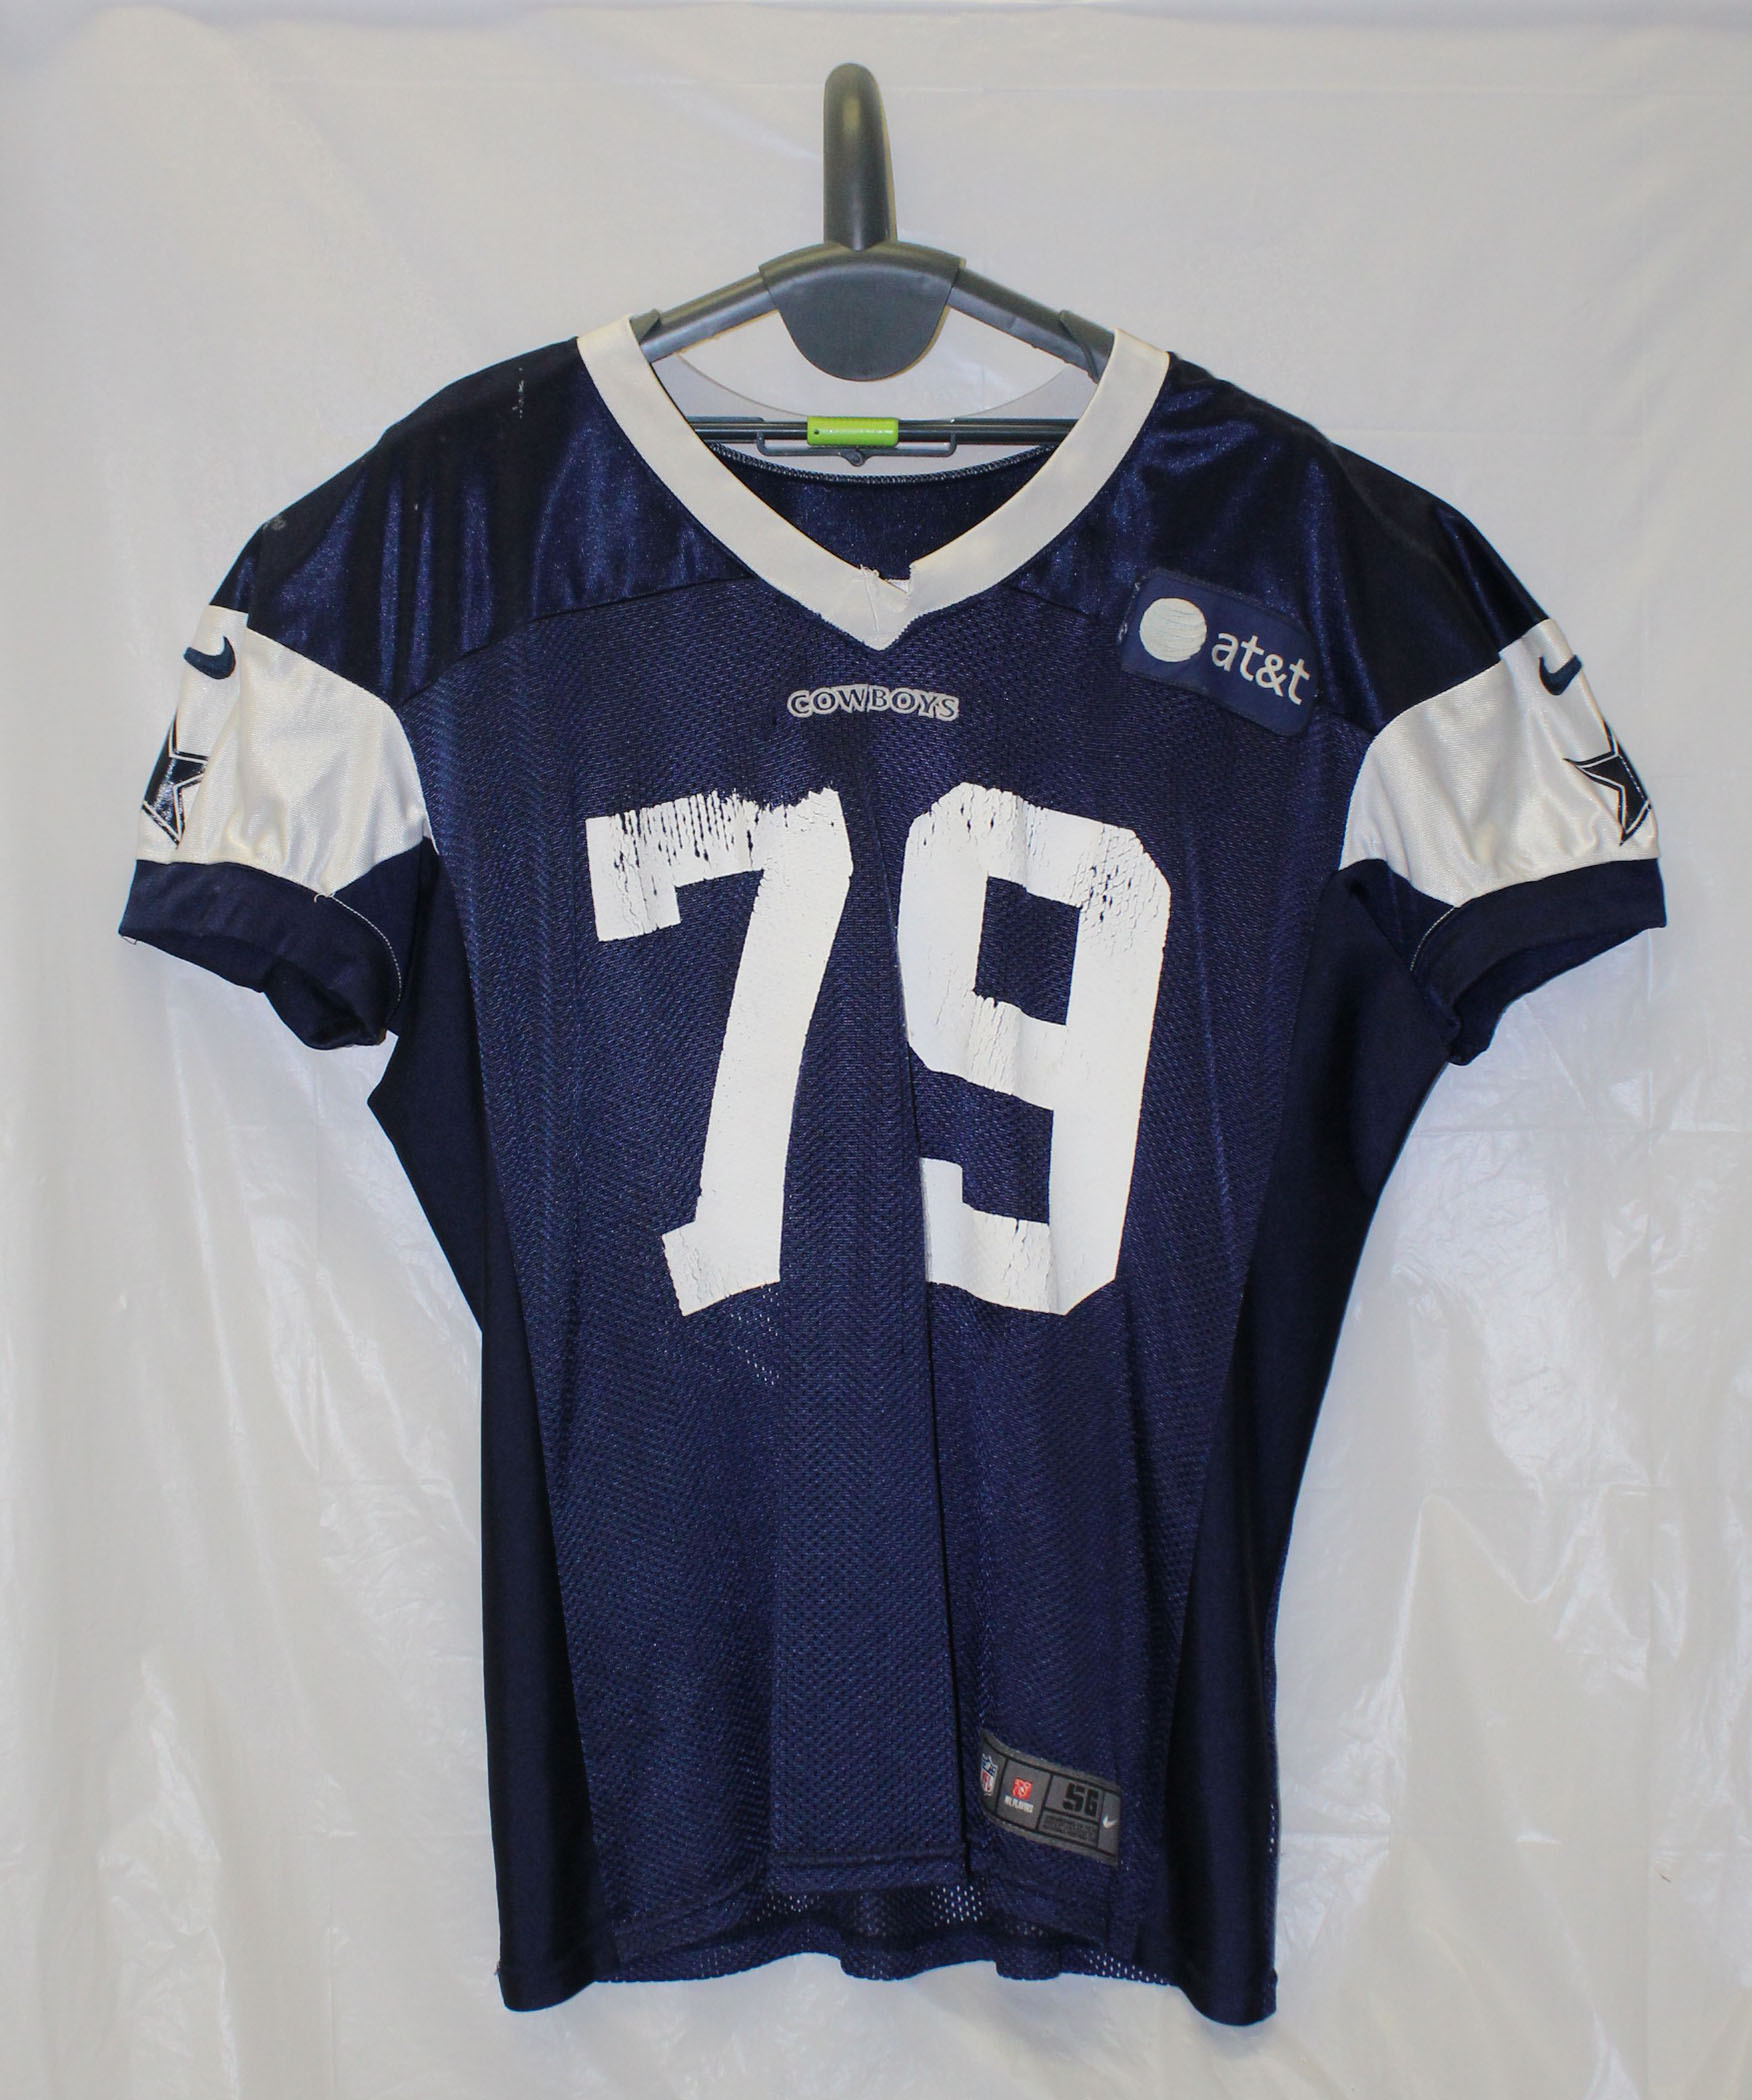 Dallas Cowboys Reebok Authentic Practice Worn Jersey with Blue AT T ... 1845113c6